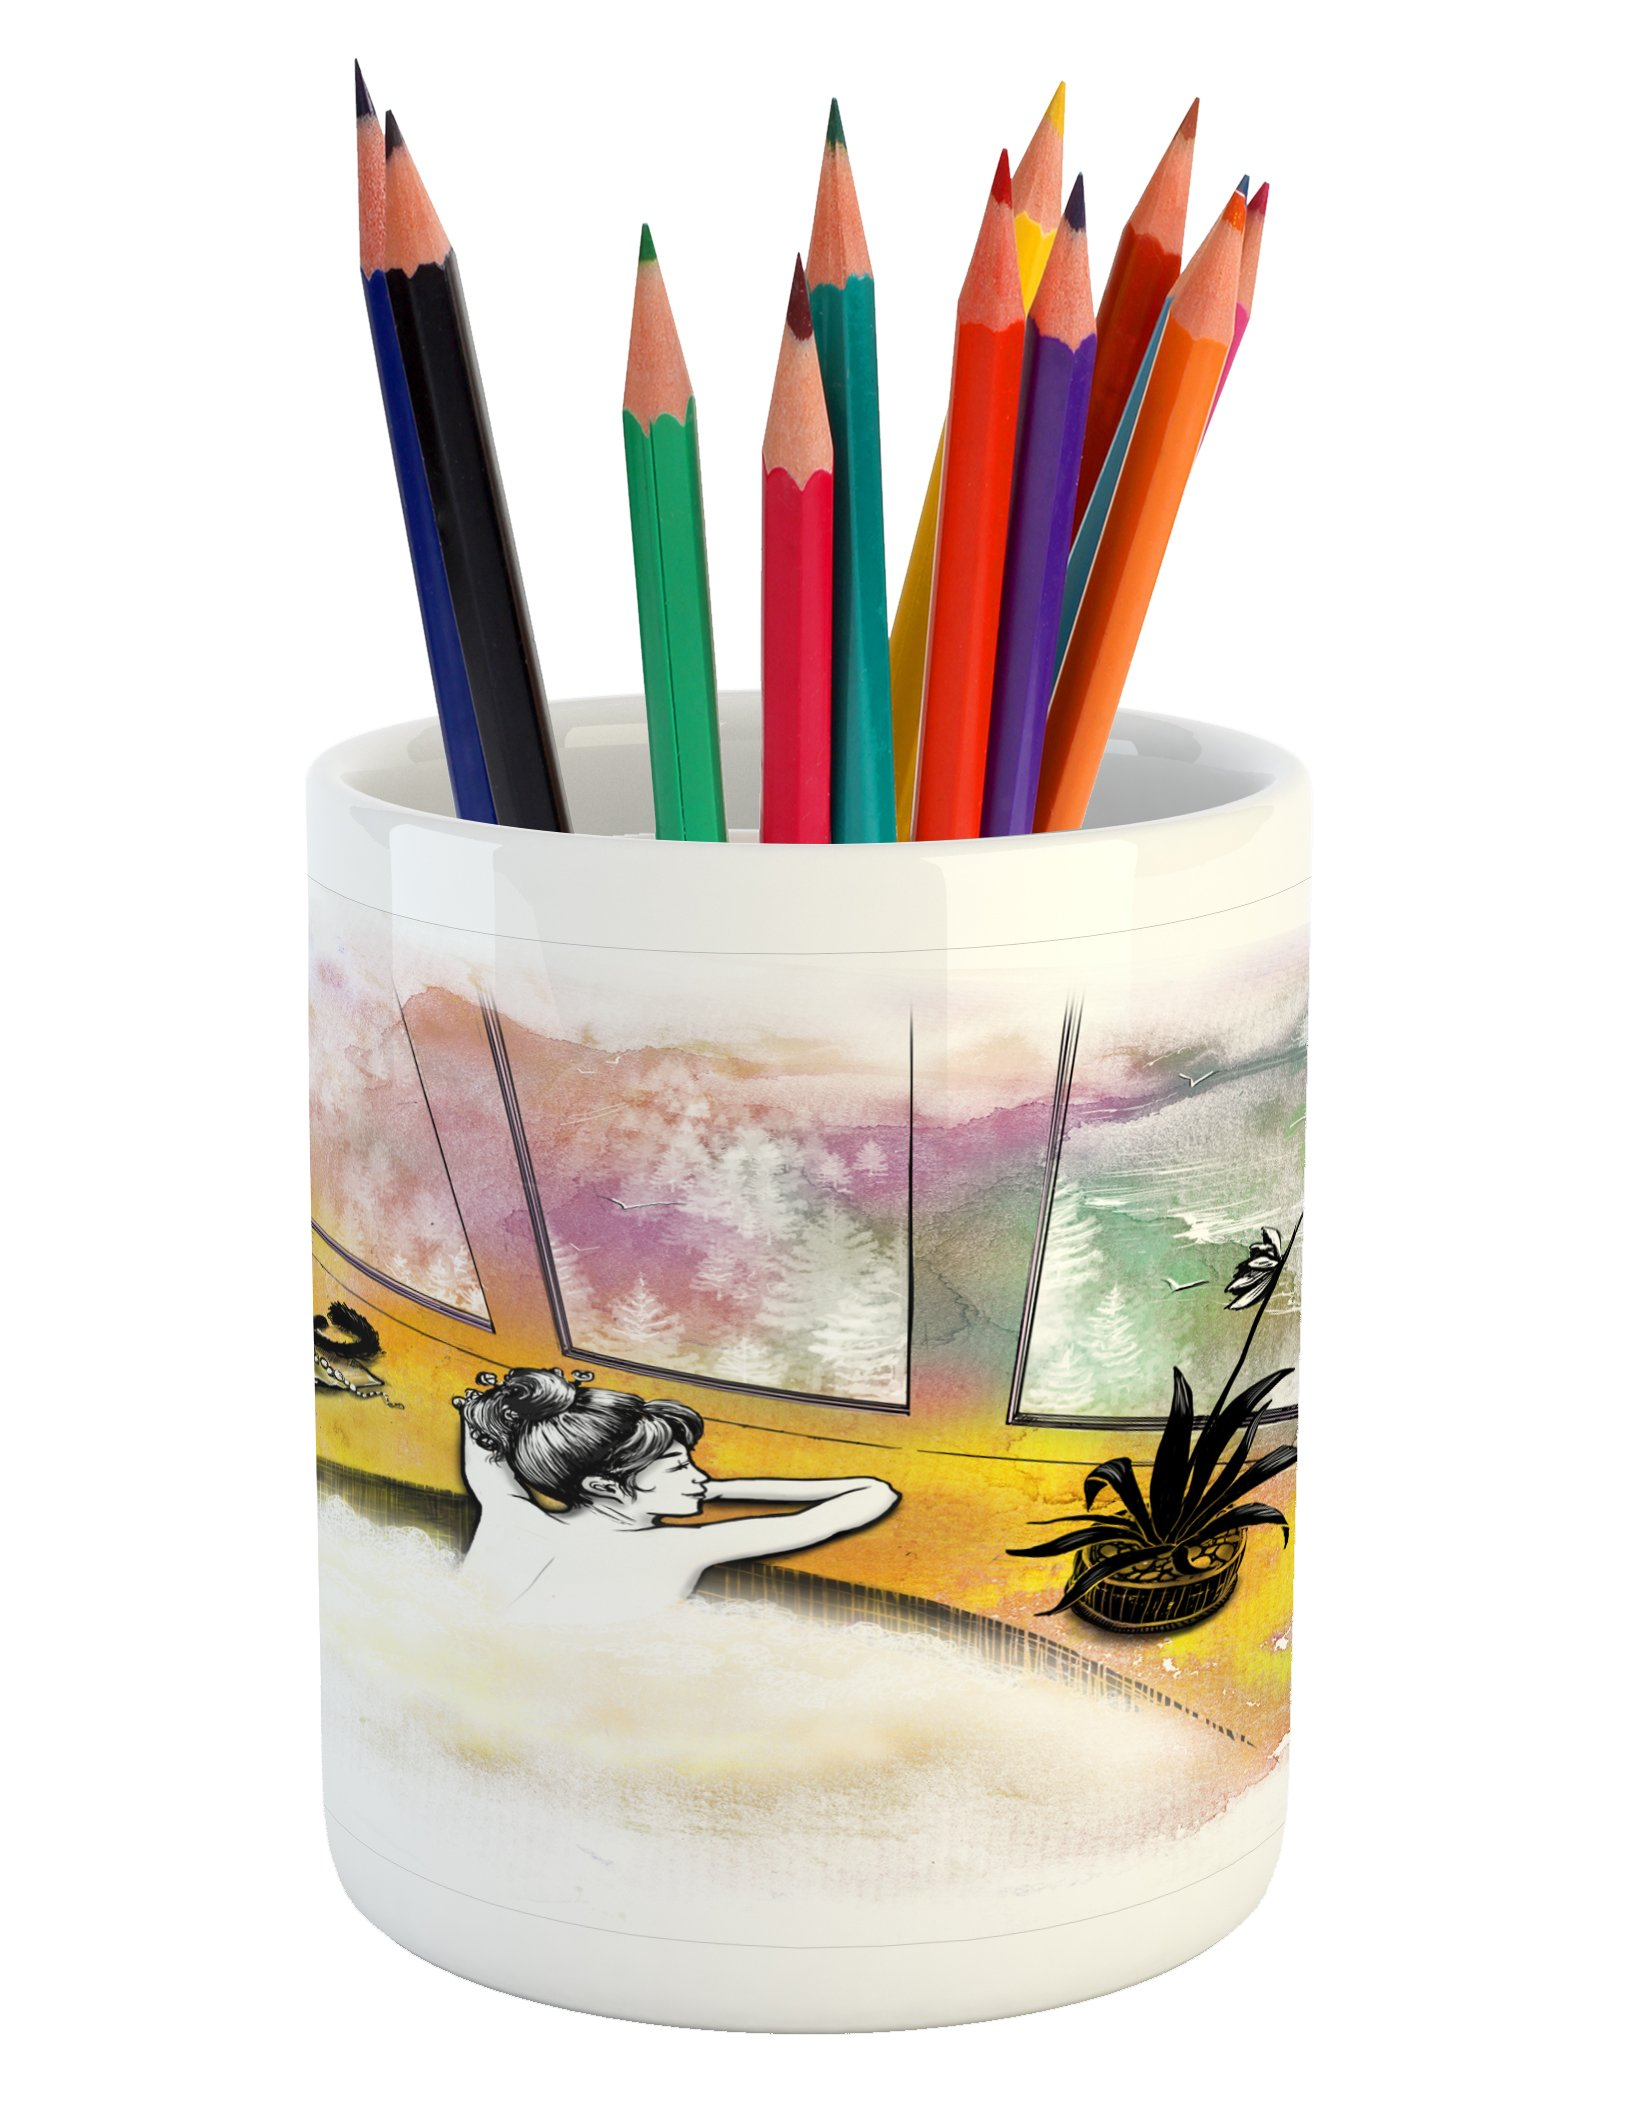 Ambesonne Modern Pencil Pen Holder, Girl with Cat Taking Bath Spa Aroma Theraphy Relaxing Peaceful Massage Illustration, Printed Ceramic Pencil Pen Holder for Desk Office Accessory, Multicolor